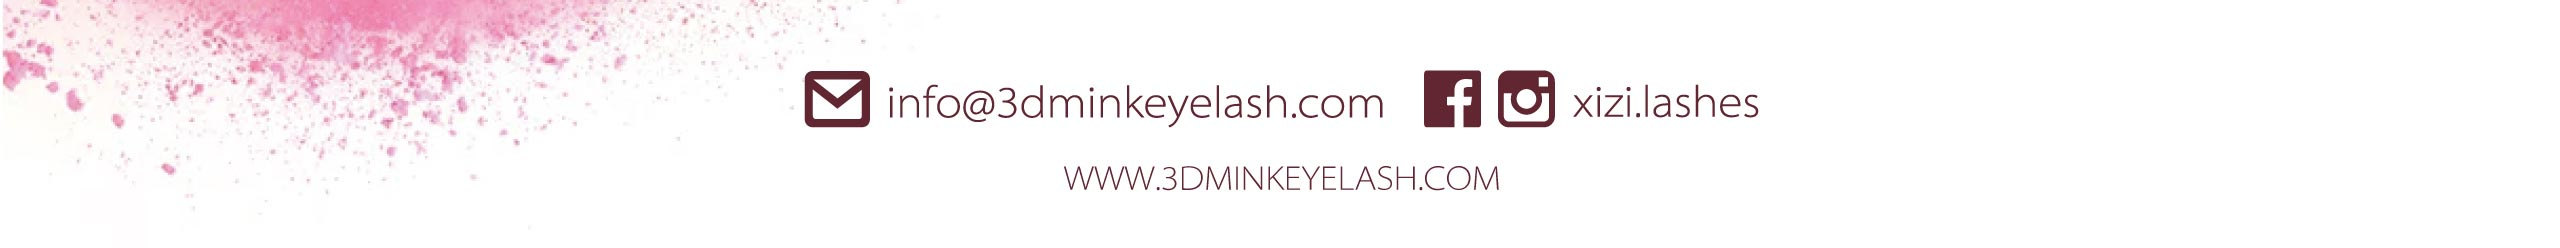 eyelash manufacturer-XIZI LASHES